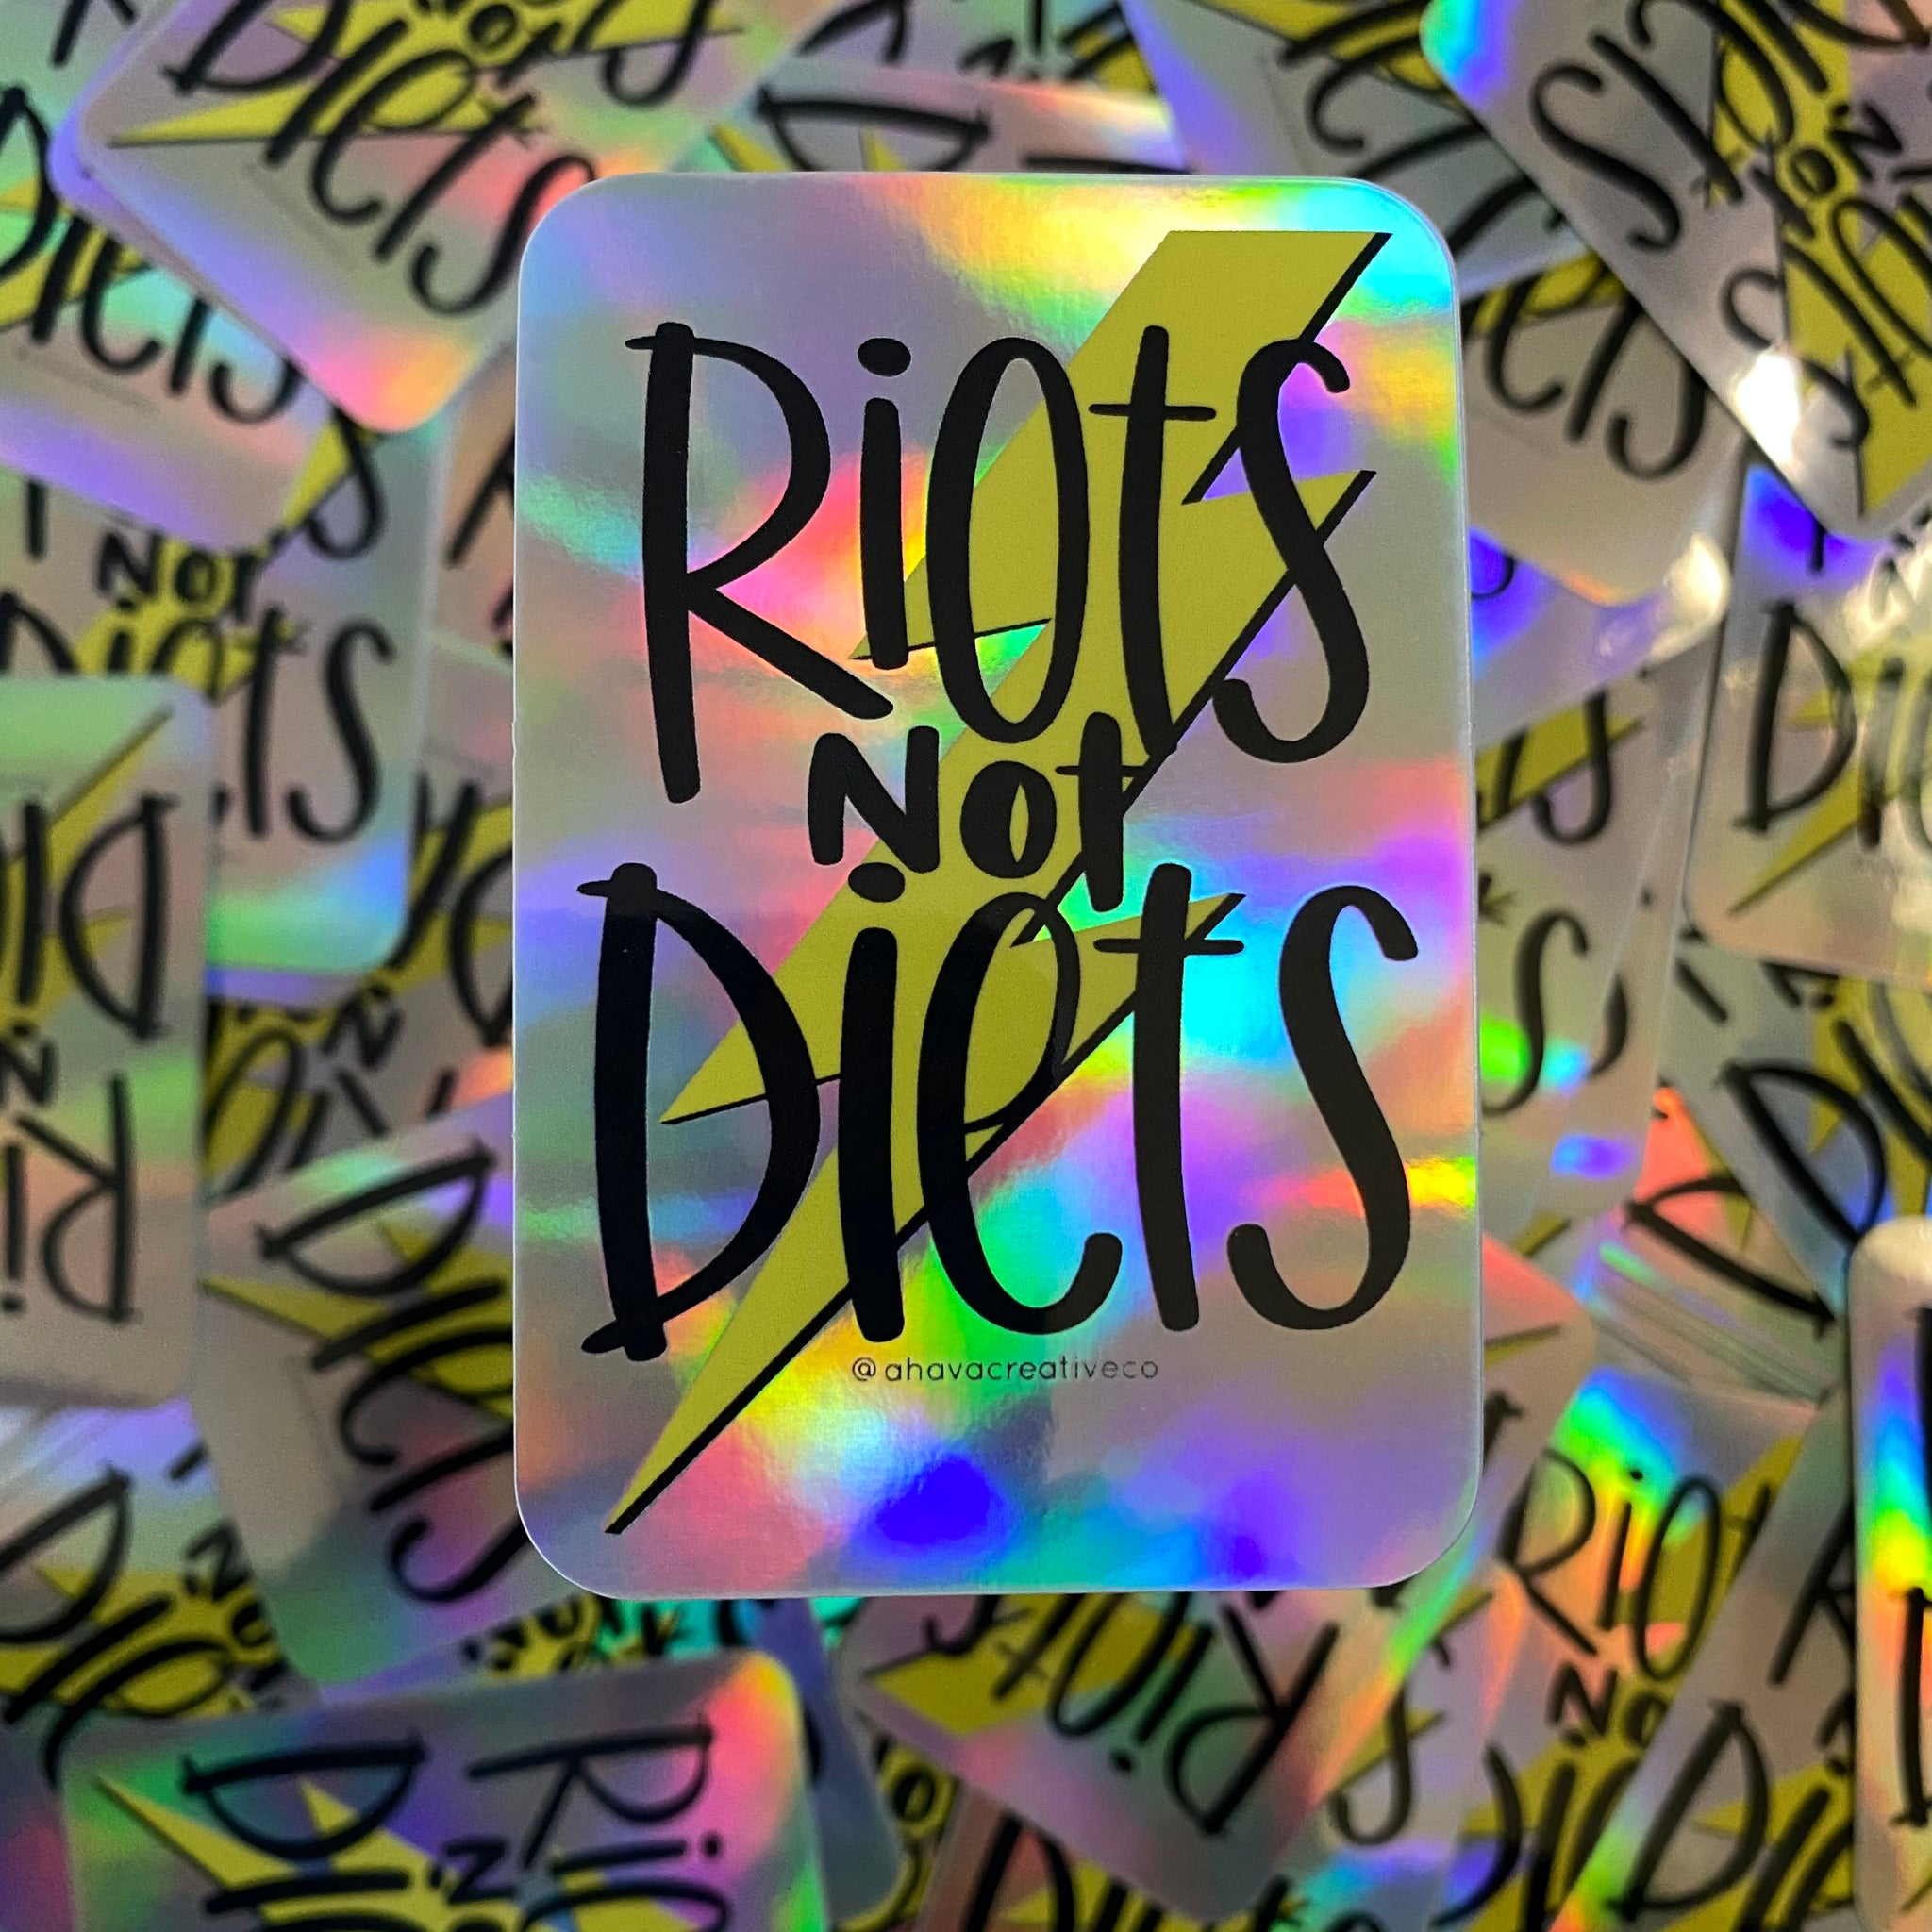 Riots Not Diets Holographic Vinyl Sticker